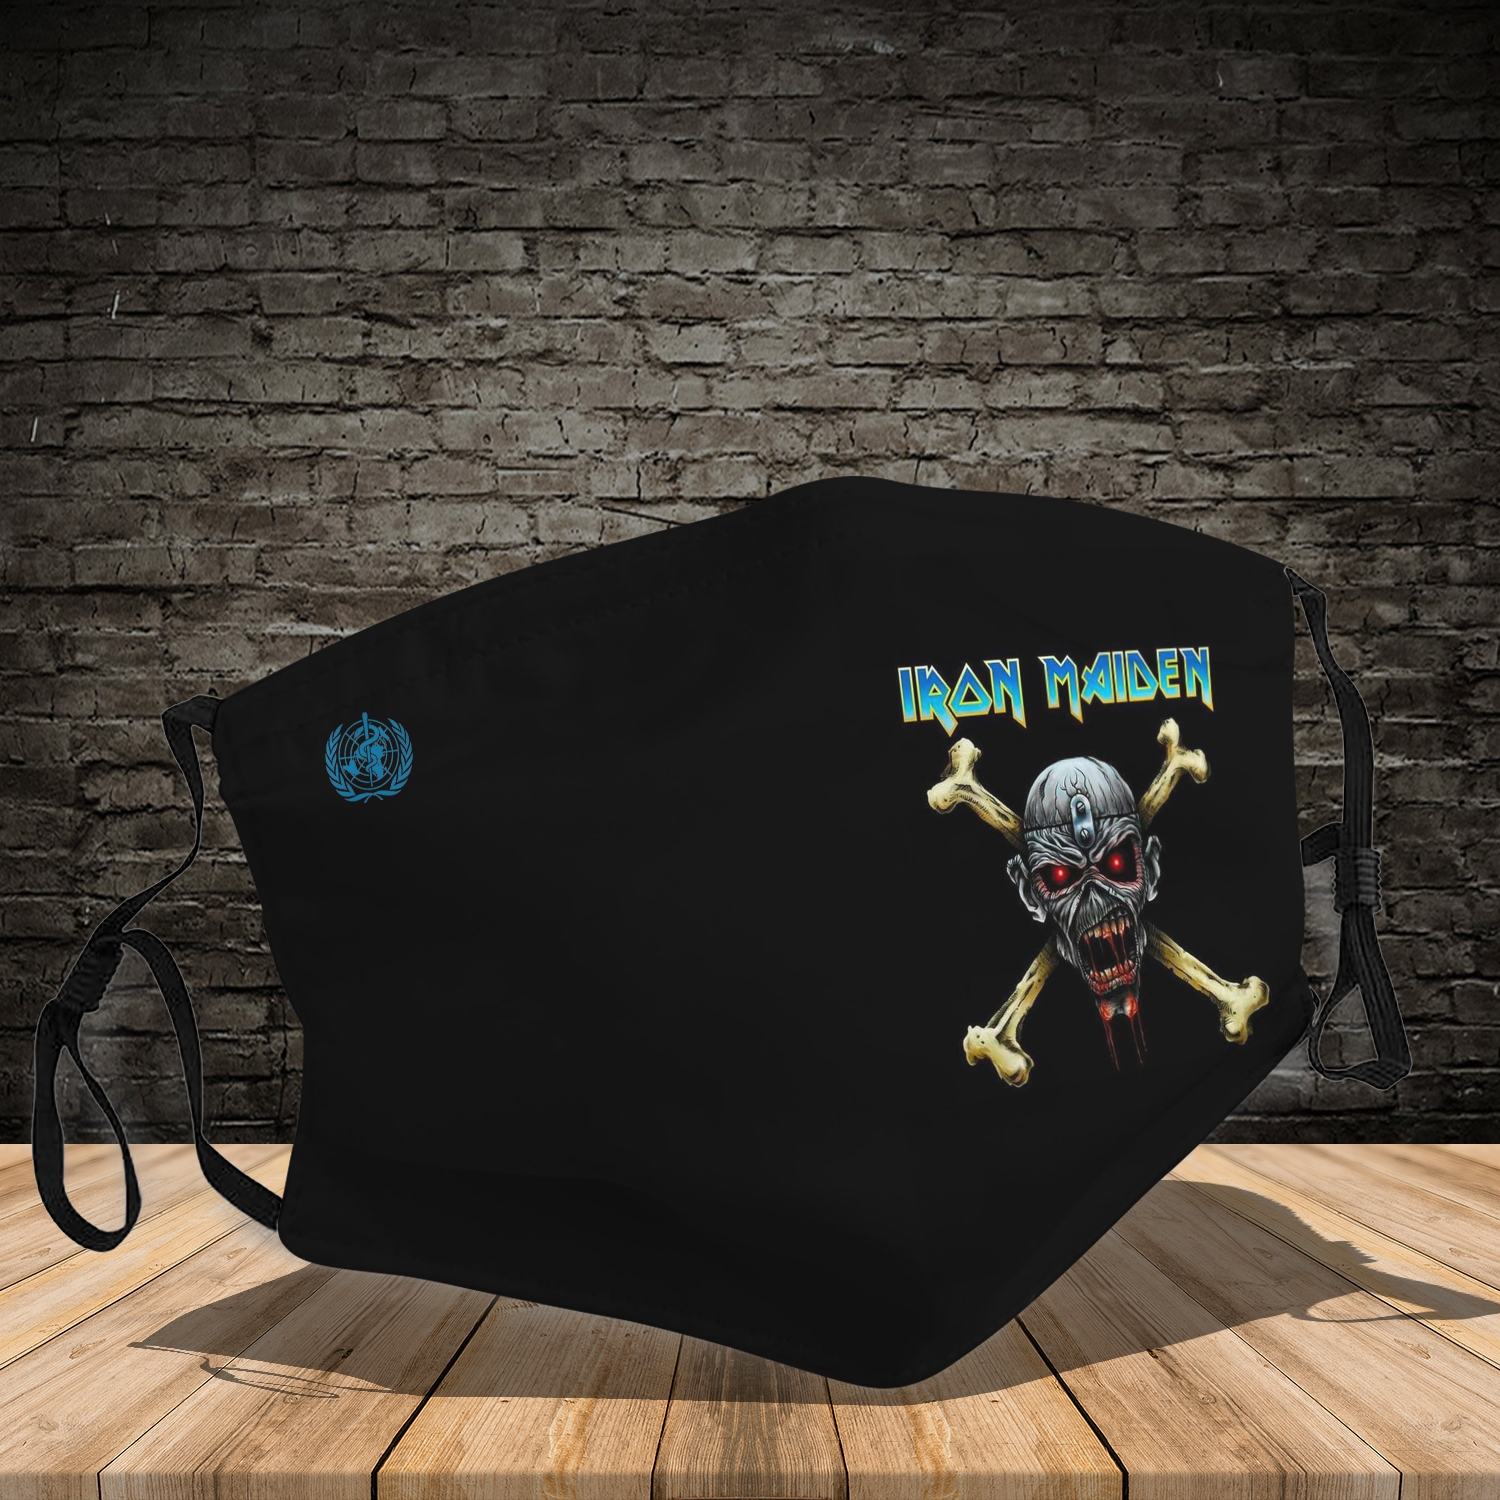 Rock band iron maiden full printing face mask 2